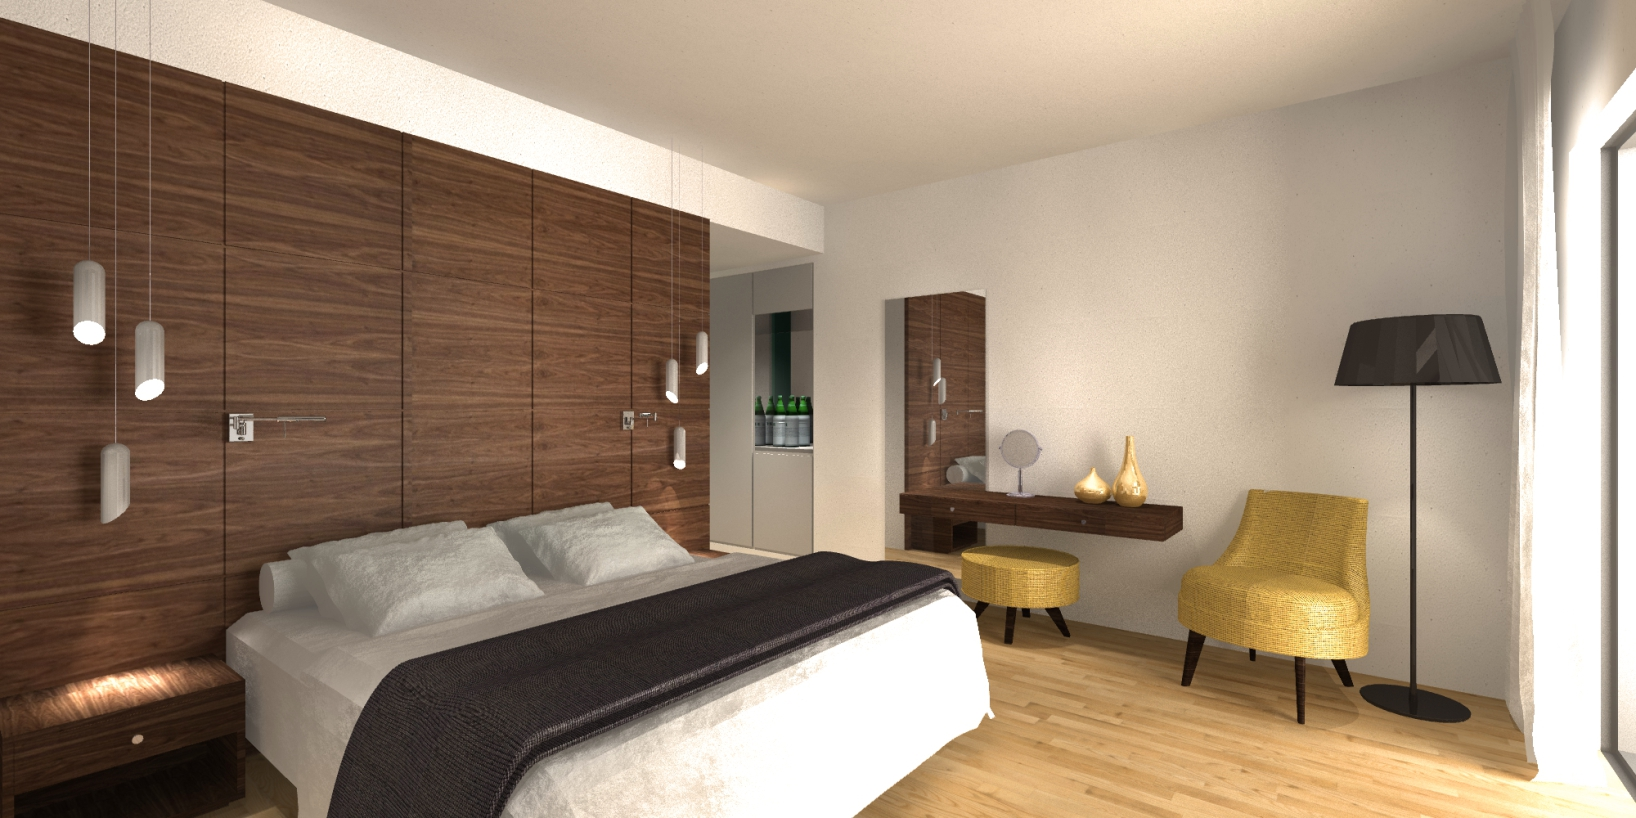 An island hotel room interior for Interior design room hotel